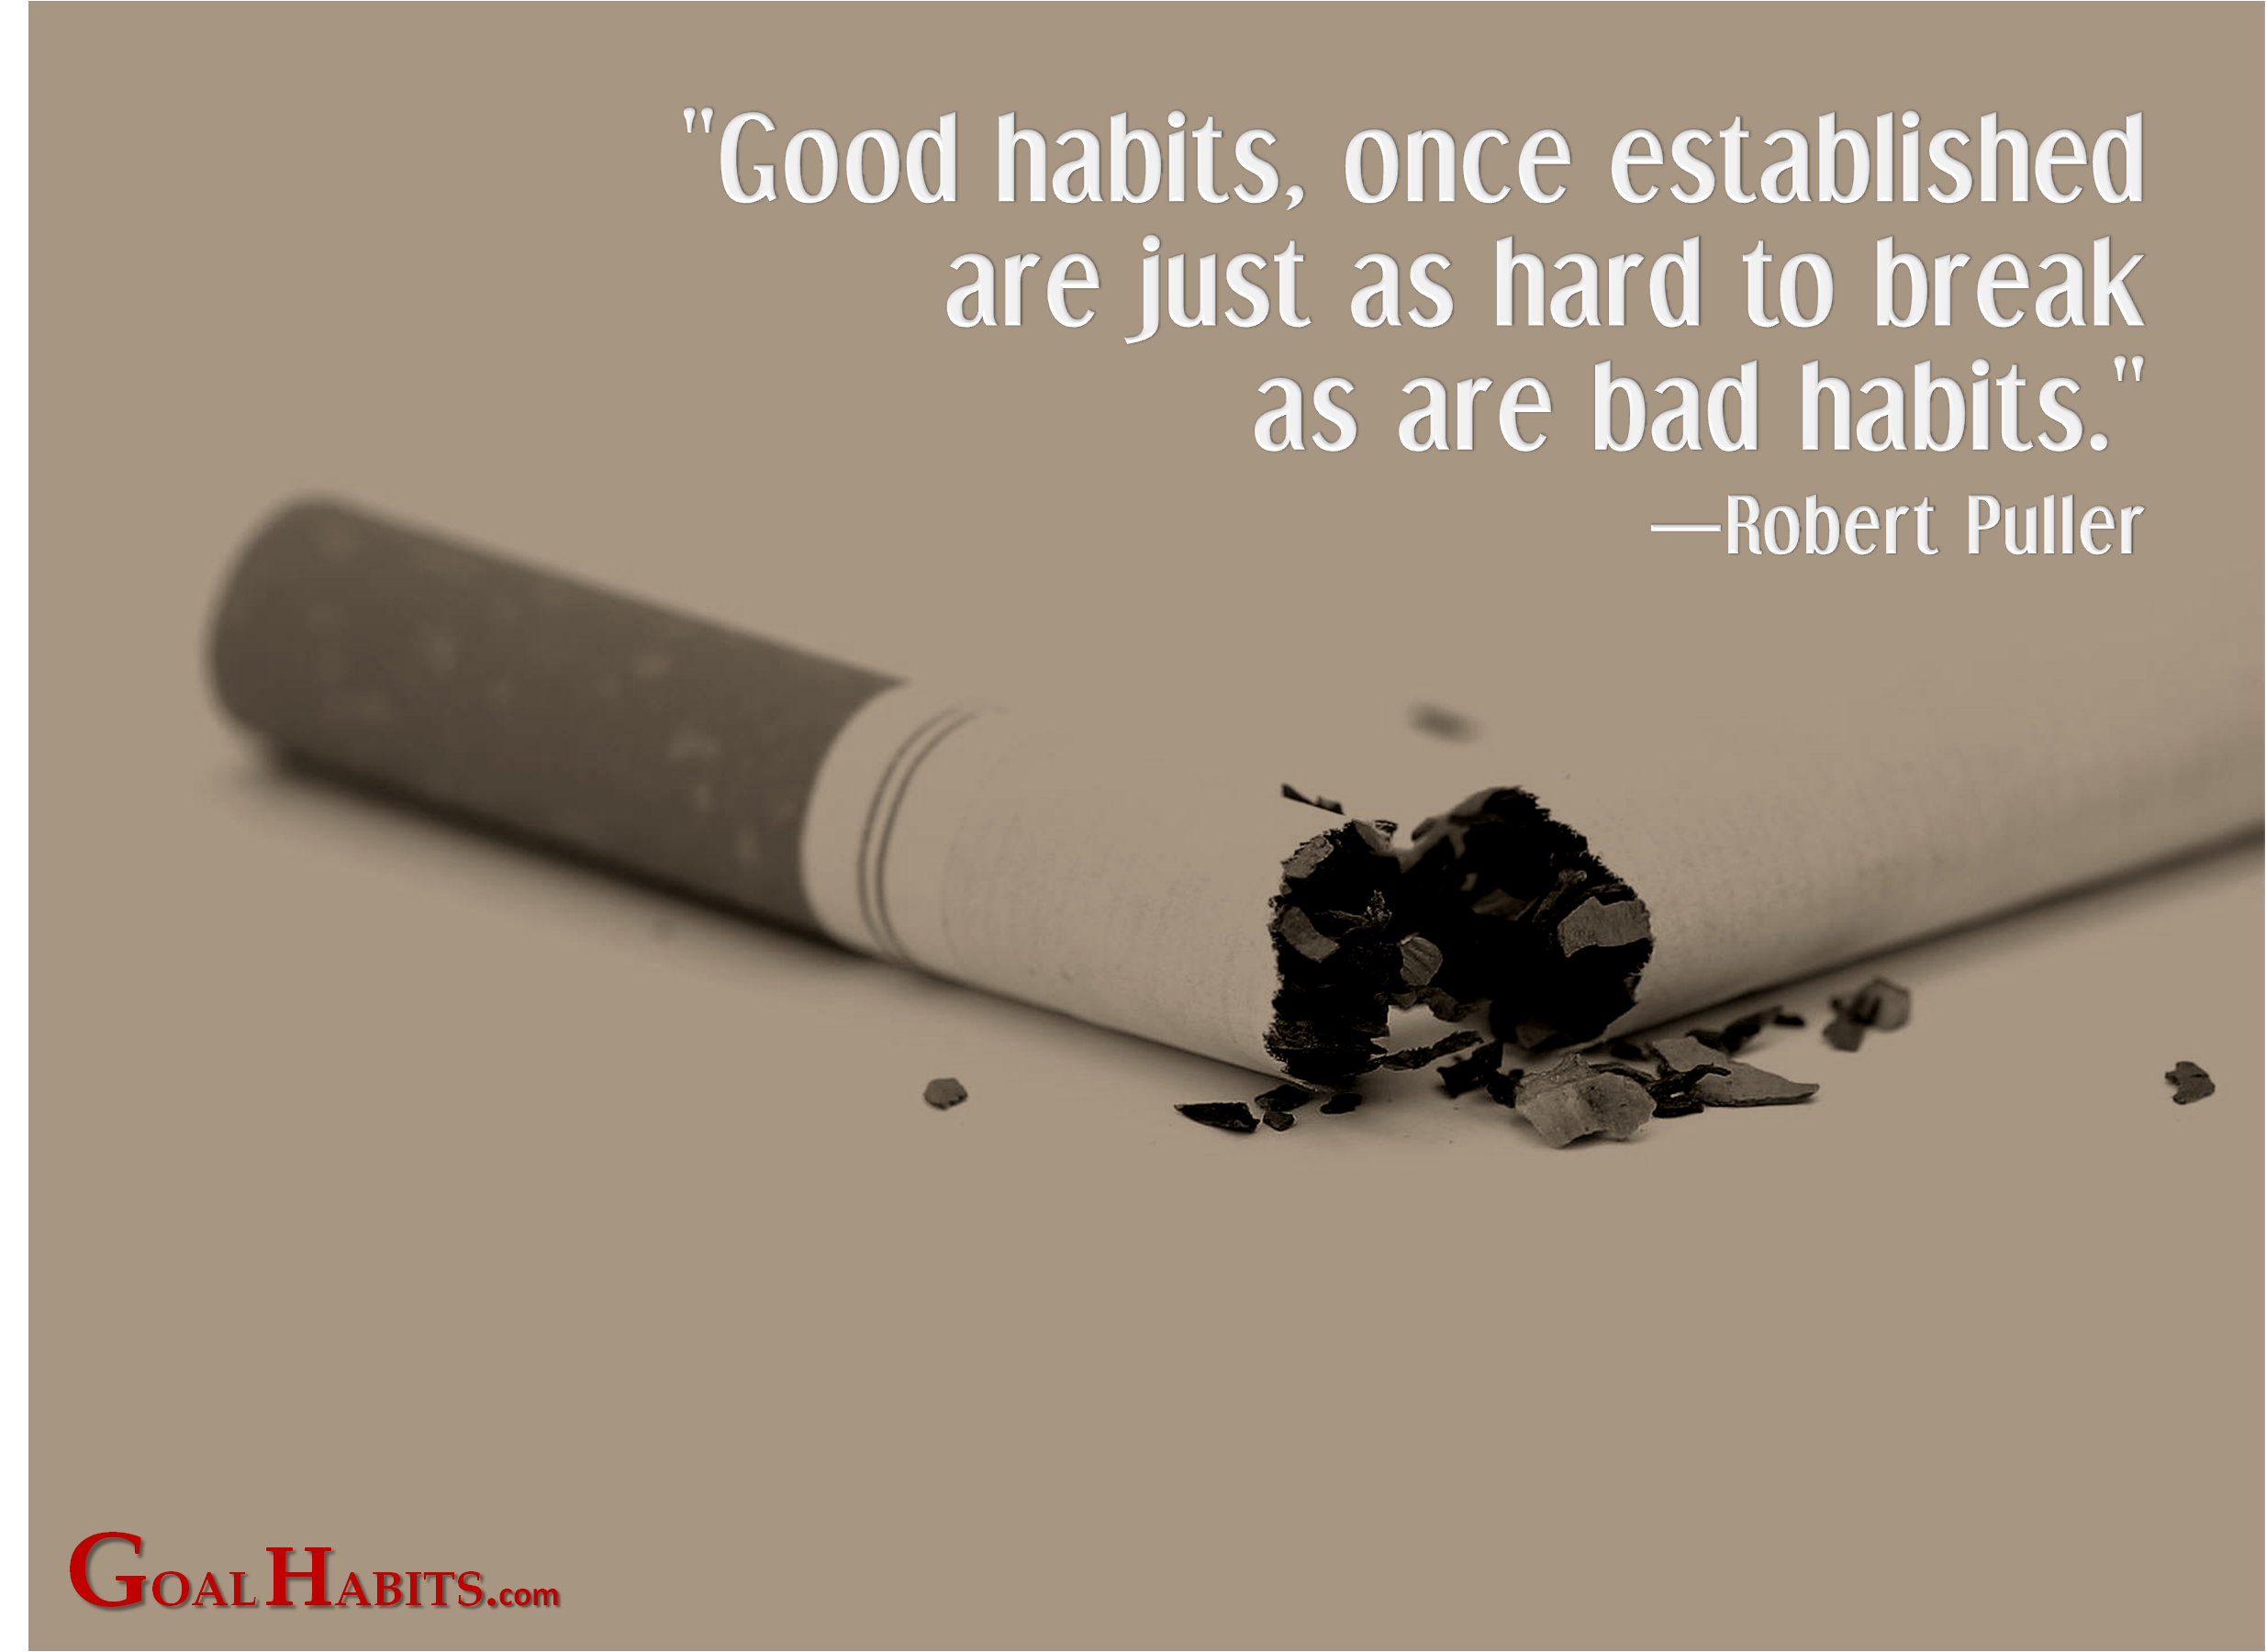 smoking habit the good and bad A habit can be many things, some good, some not so good everyone has habits that they would like to change and maybe improve upon i believe the majority of habits i have are good ones but some are not these bad habits are the ones i will talk about smoking is a bad habit that is not only harmful.